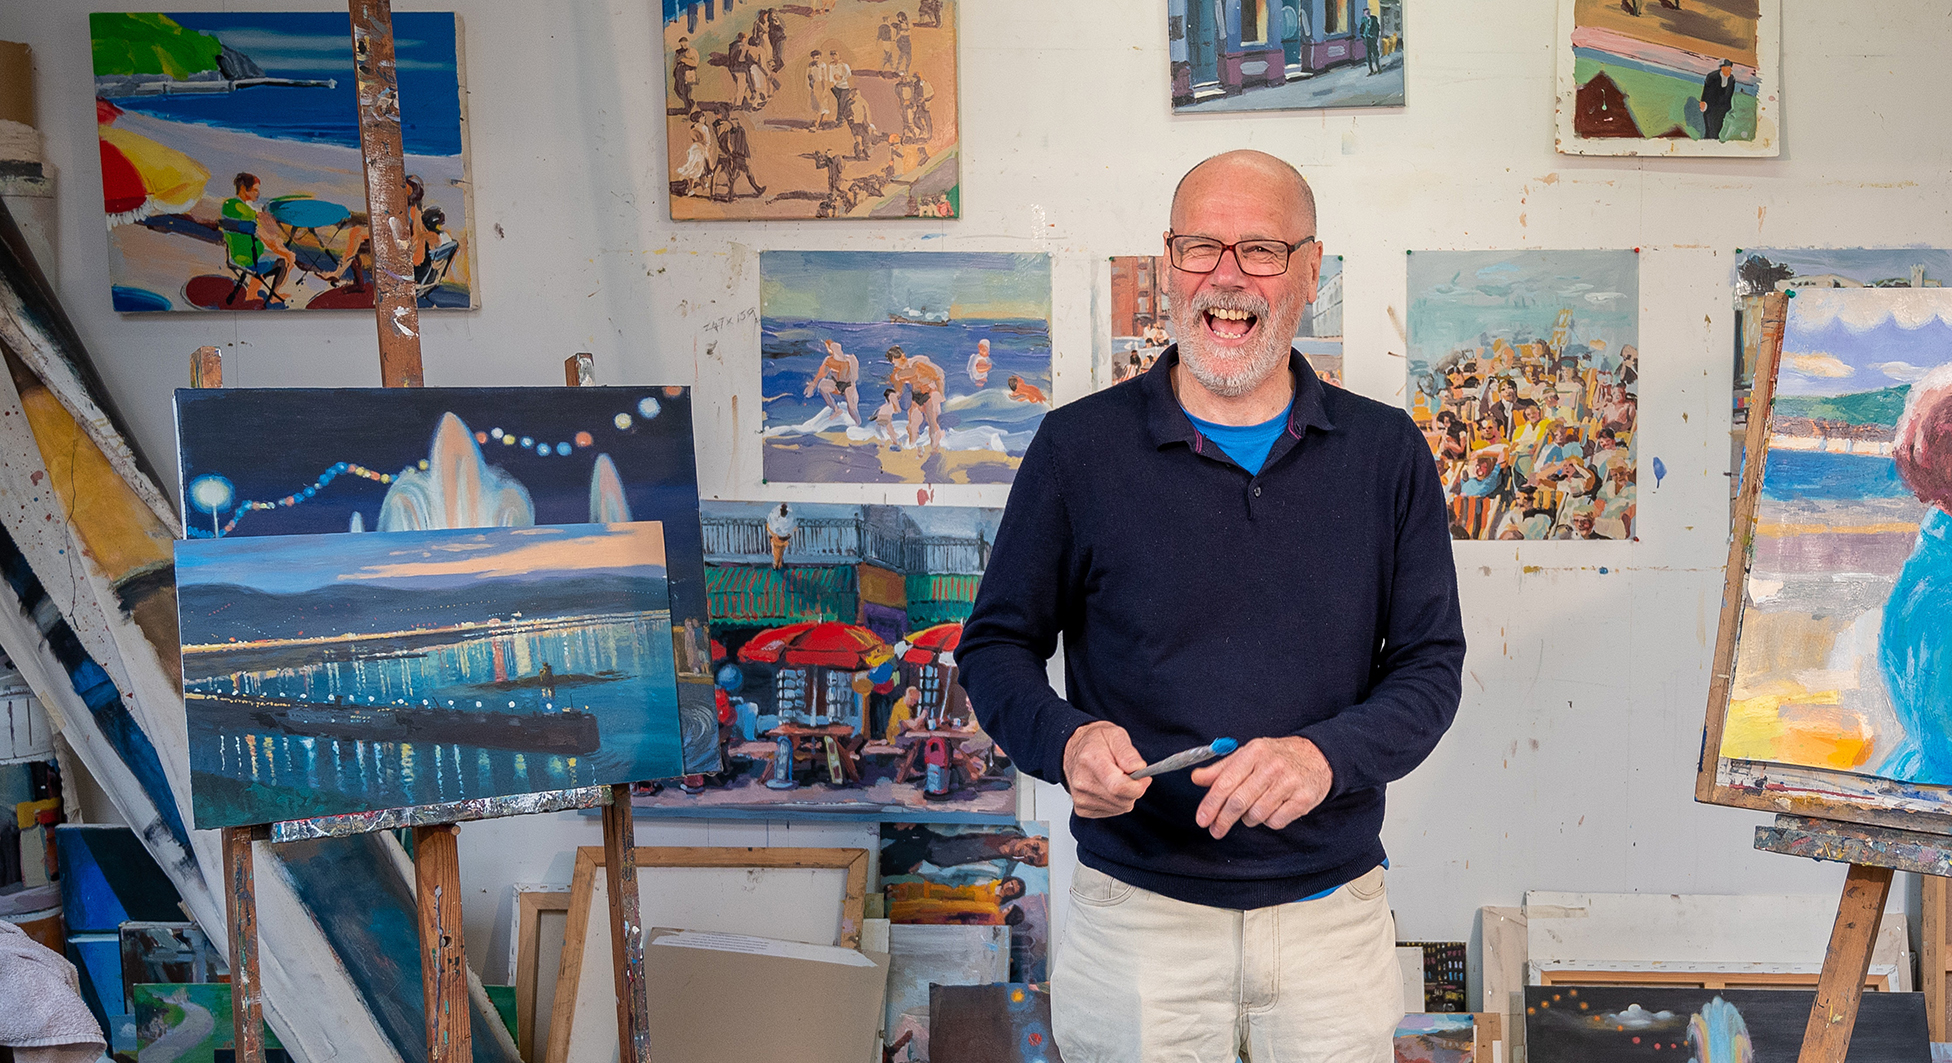 Laughing older man standing in front of paintings